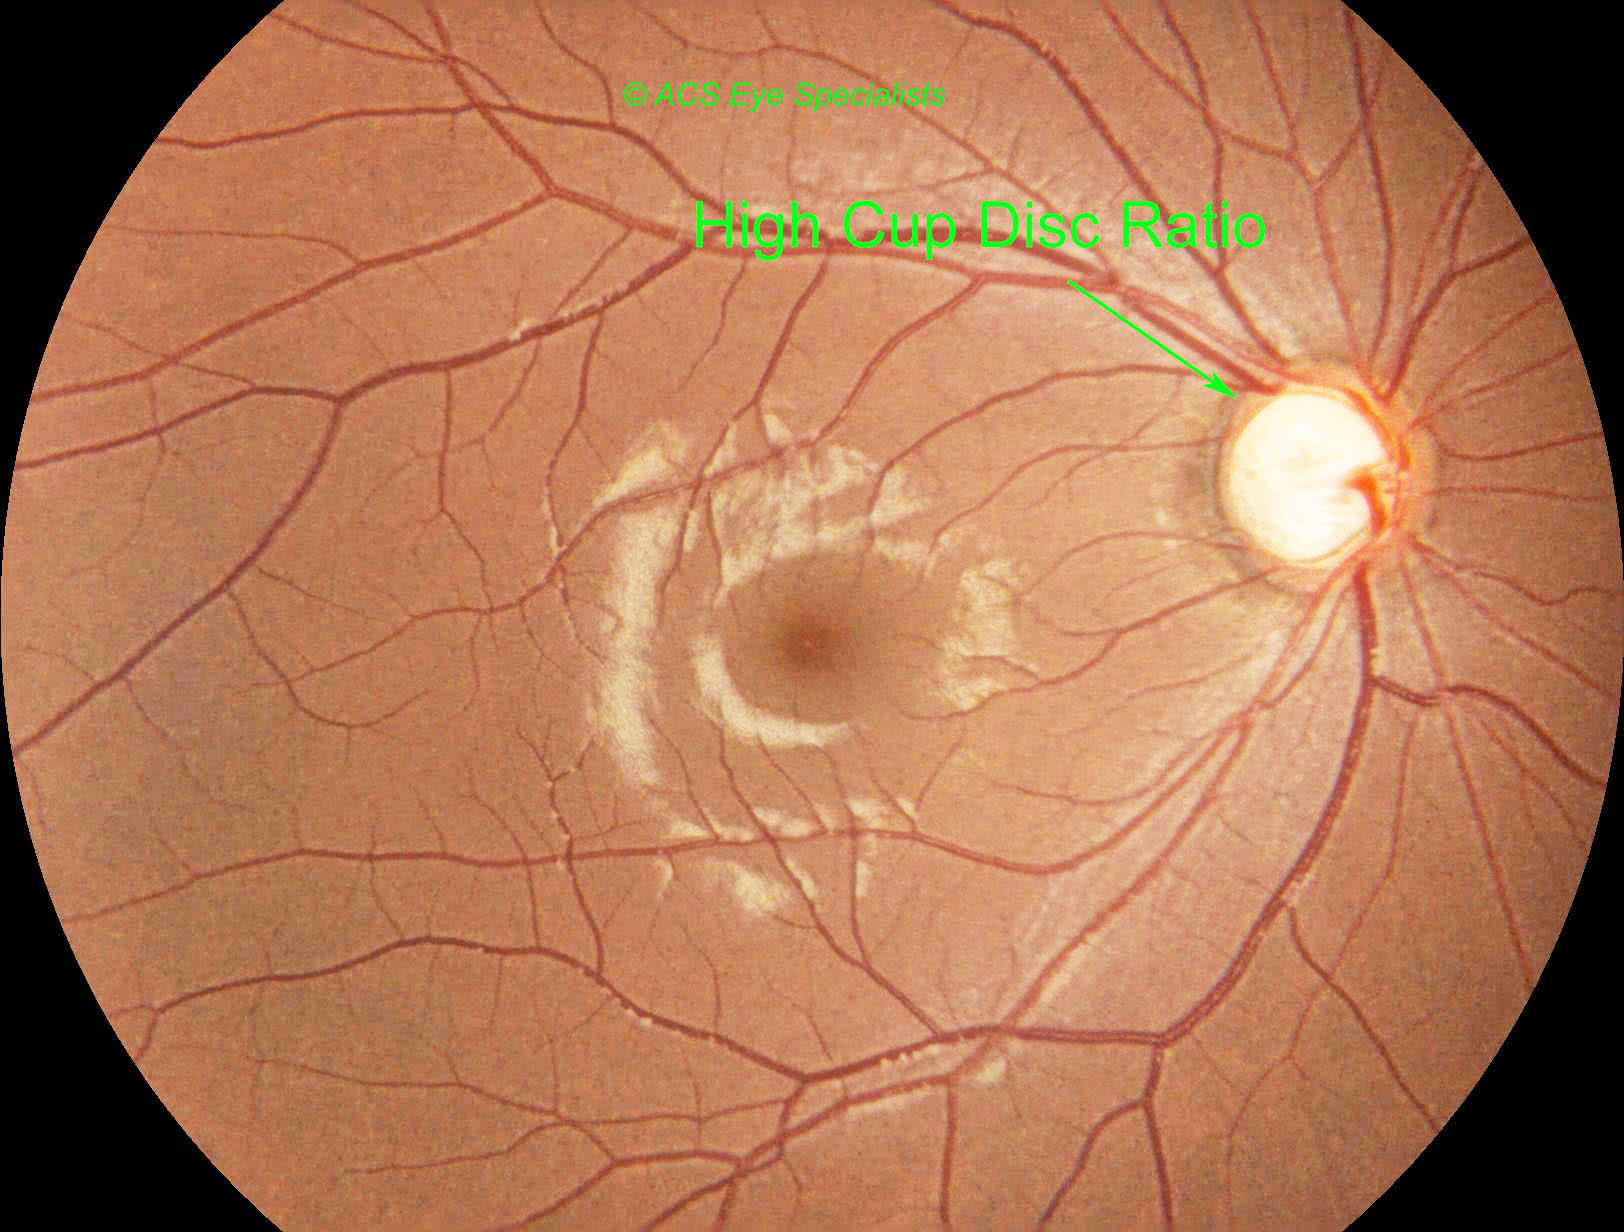 Glaucoma - ACS Eye Specialists - glaucoma screening, treatment with